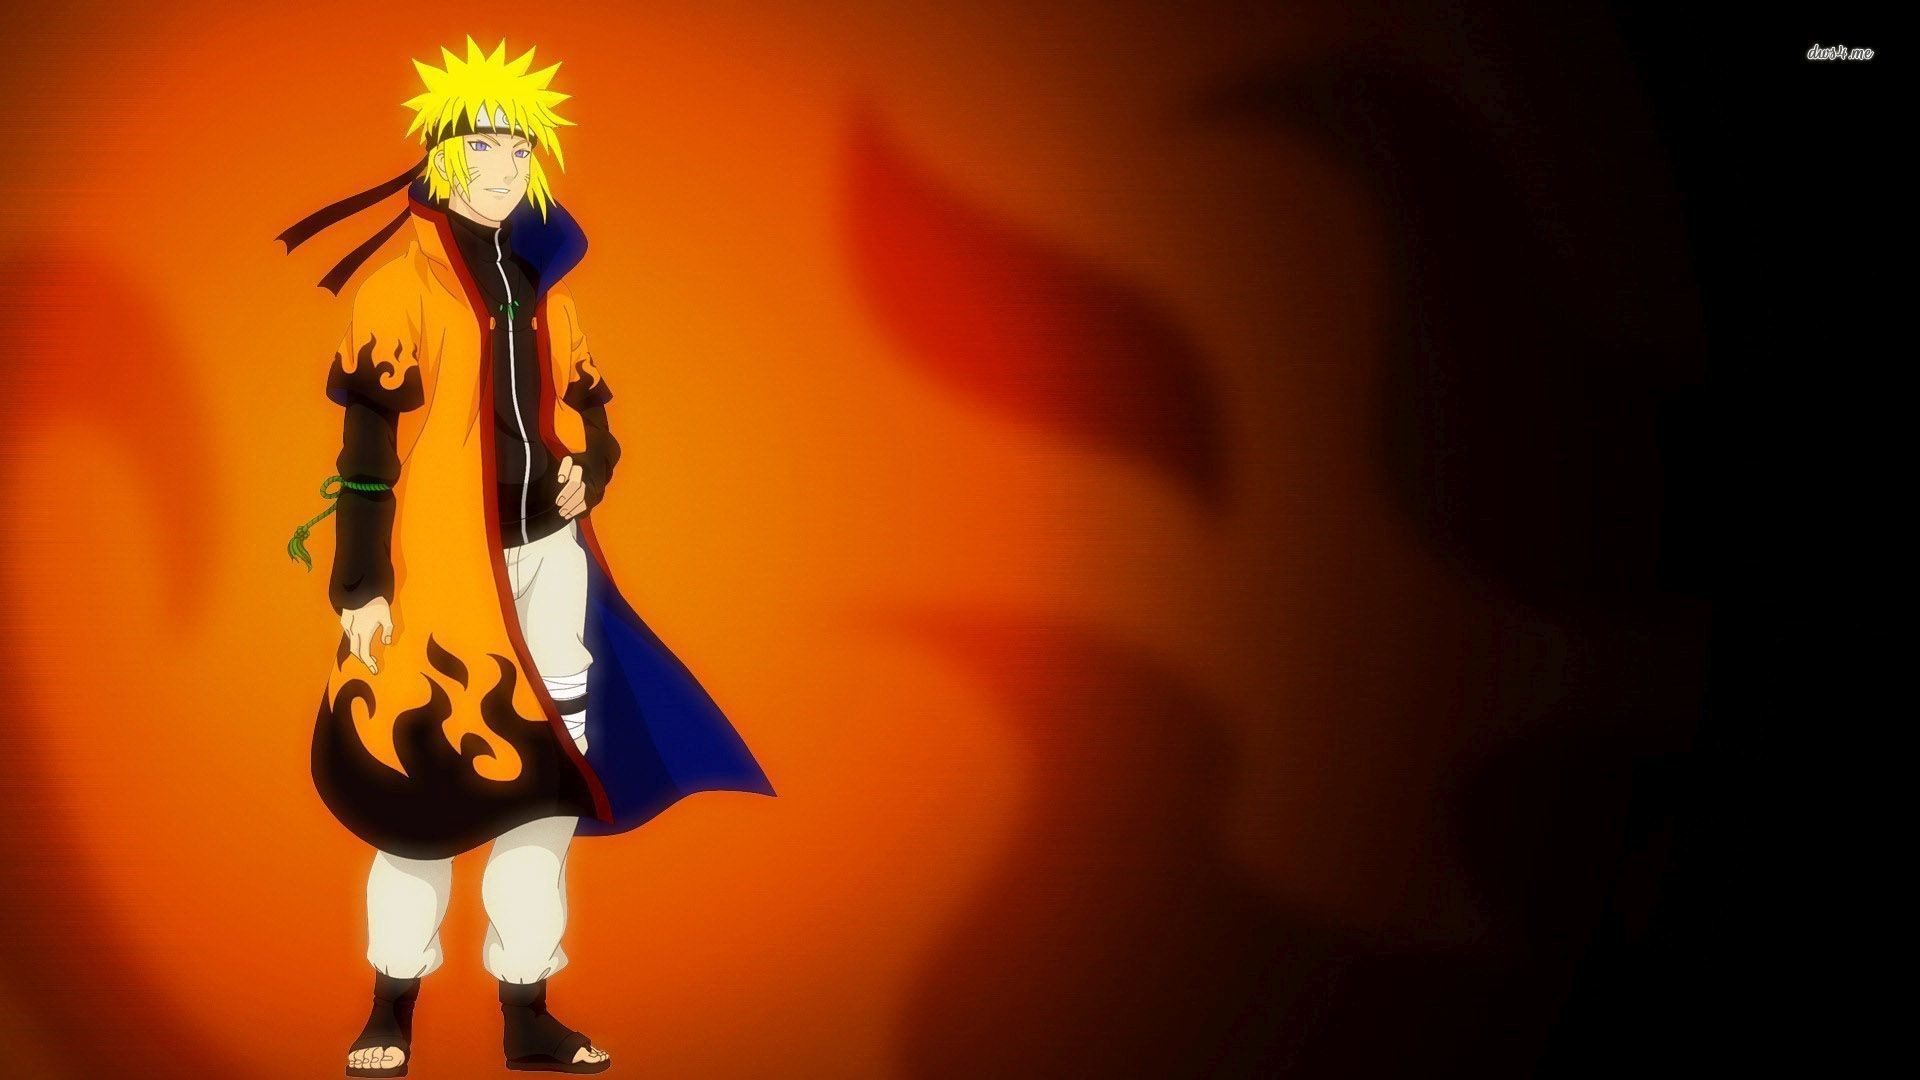 Naruto Wallpapers HD for iPhone 77 images